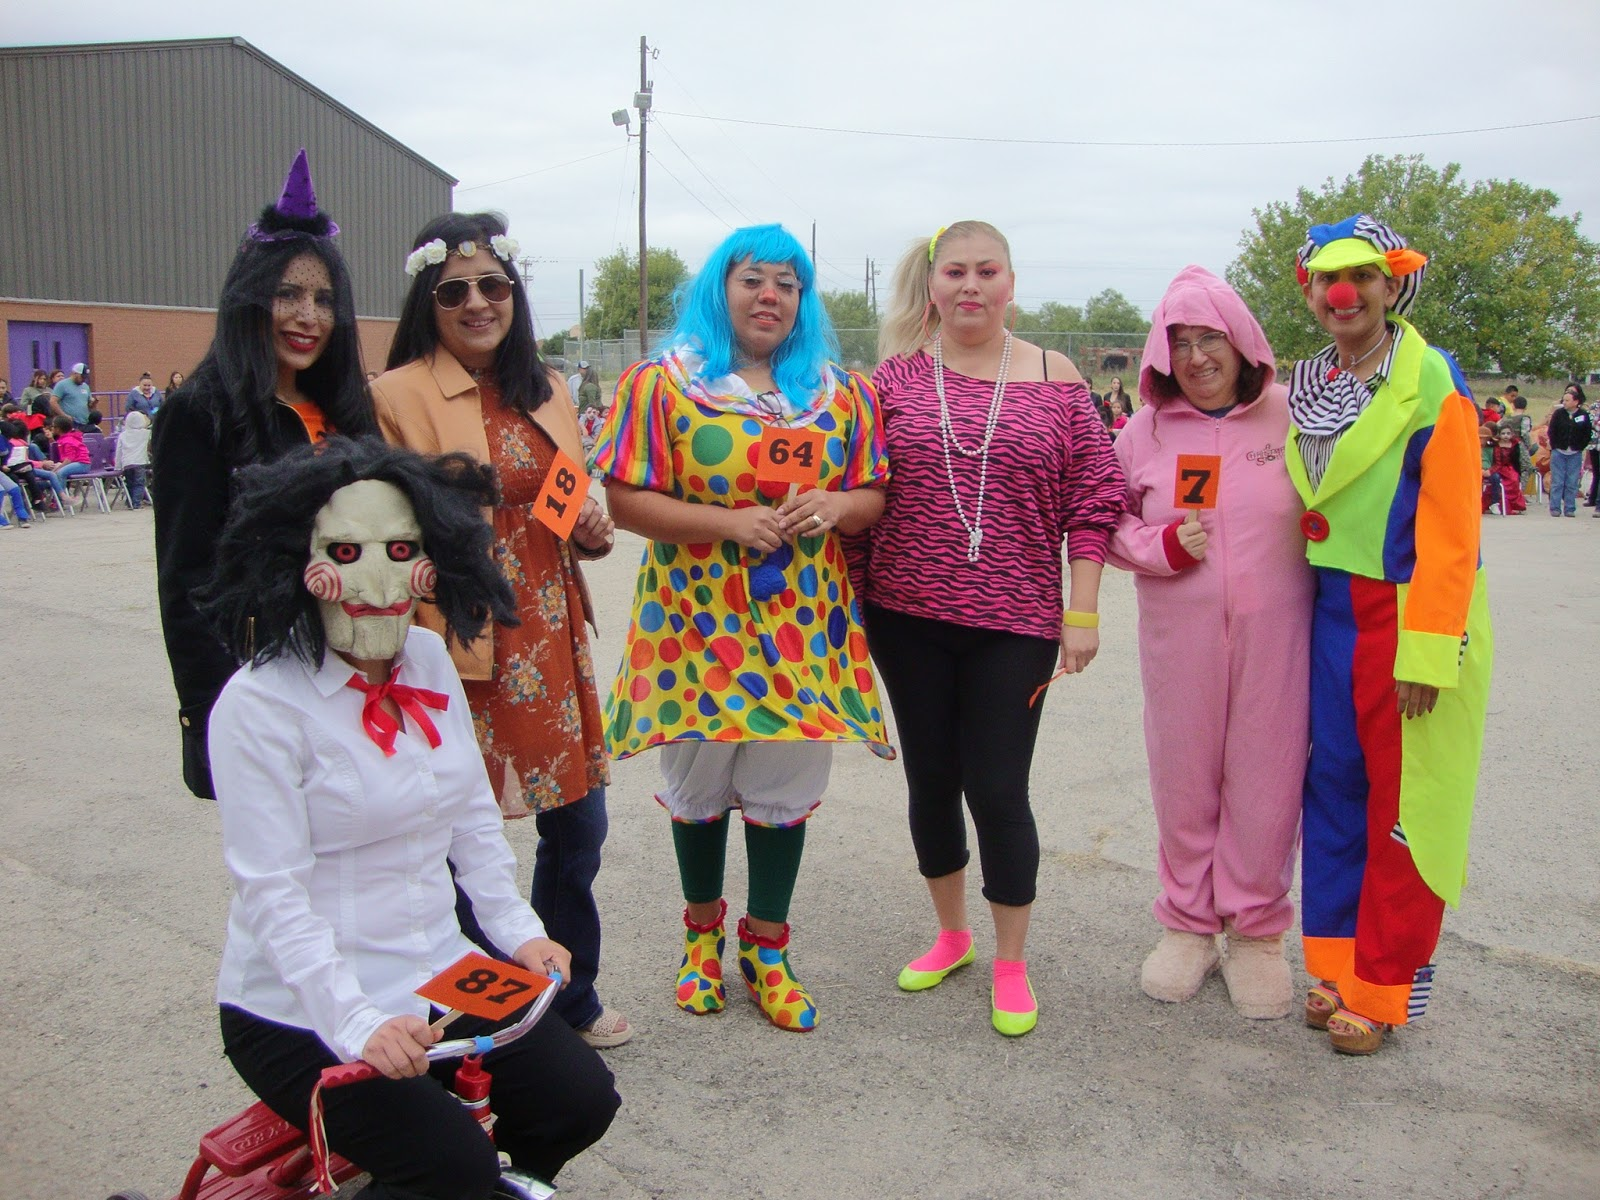 Eagle Pass Isd Ivision Darr Halloween Costume Parade